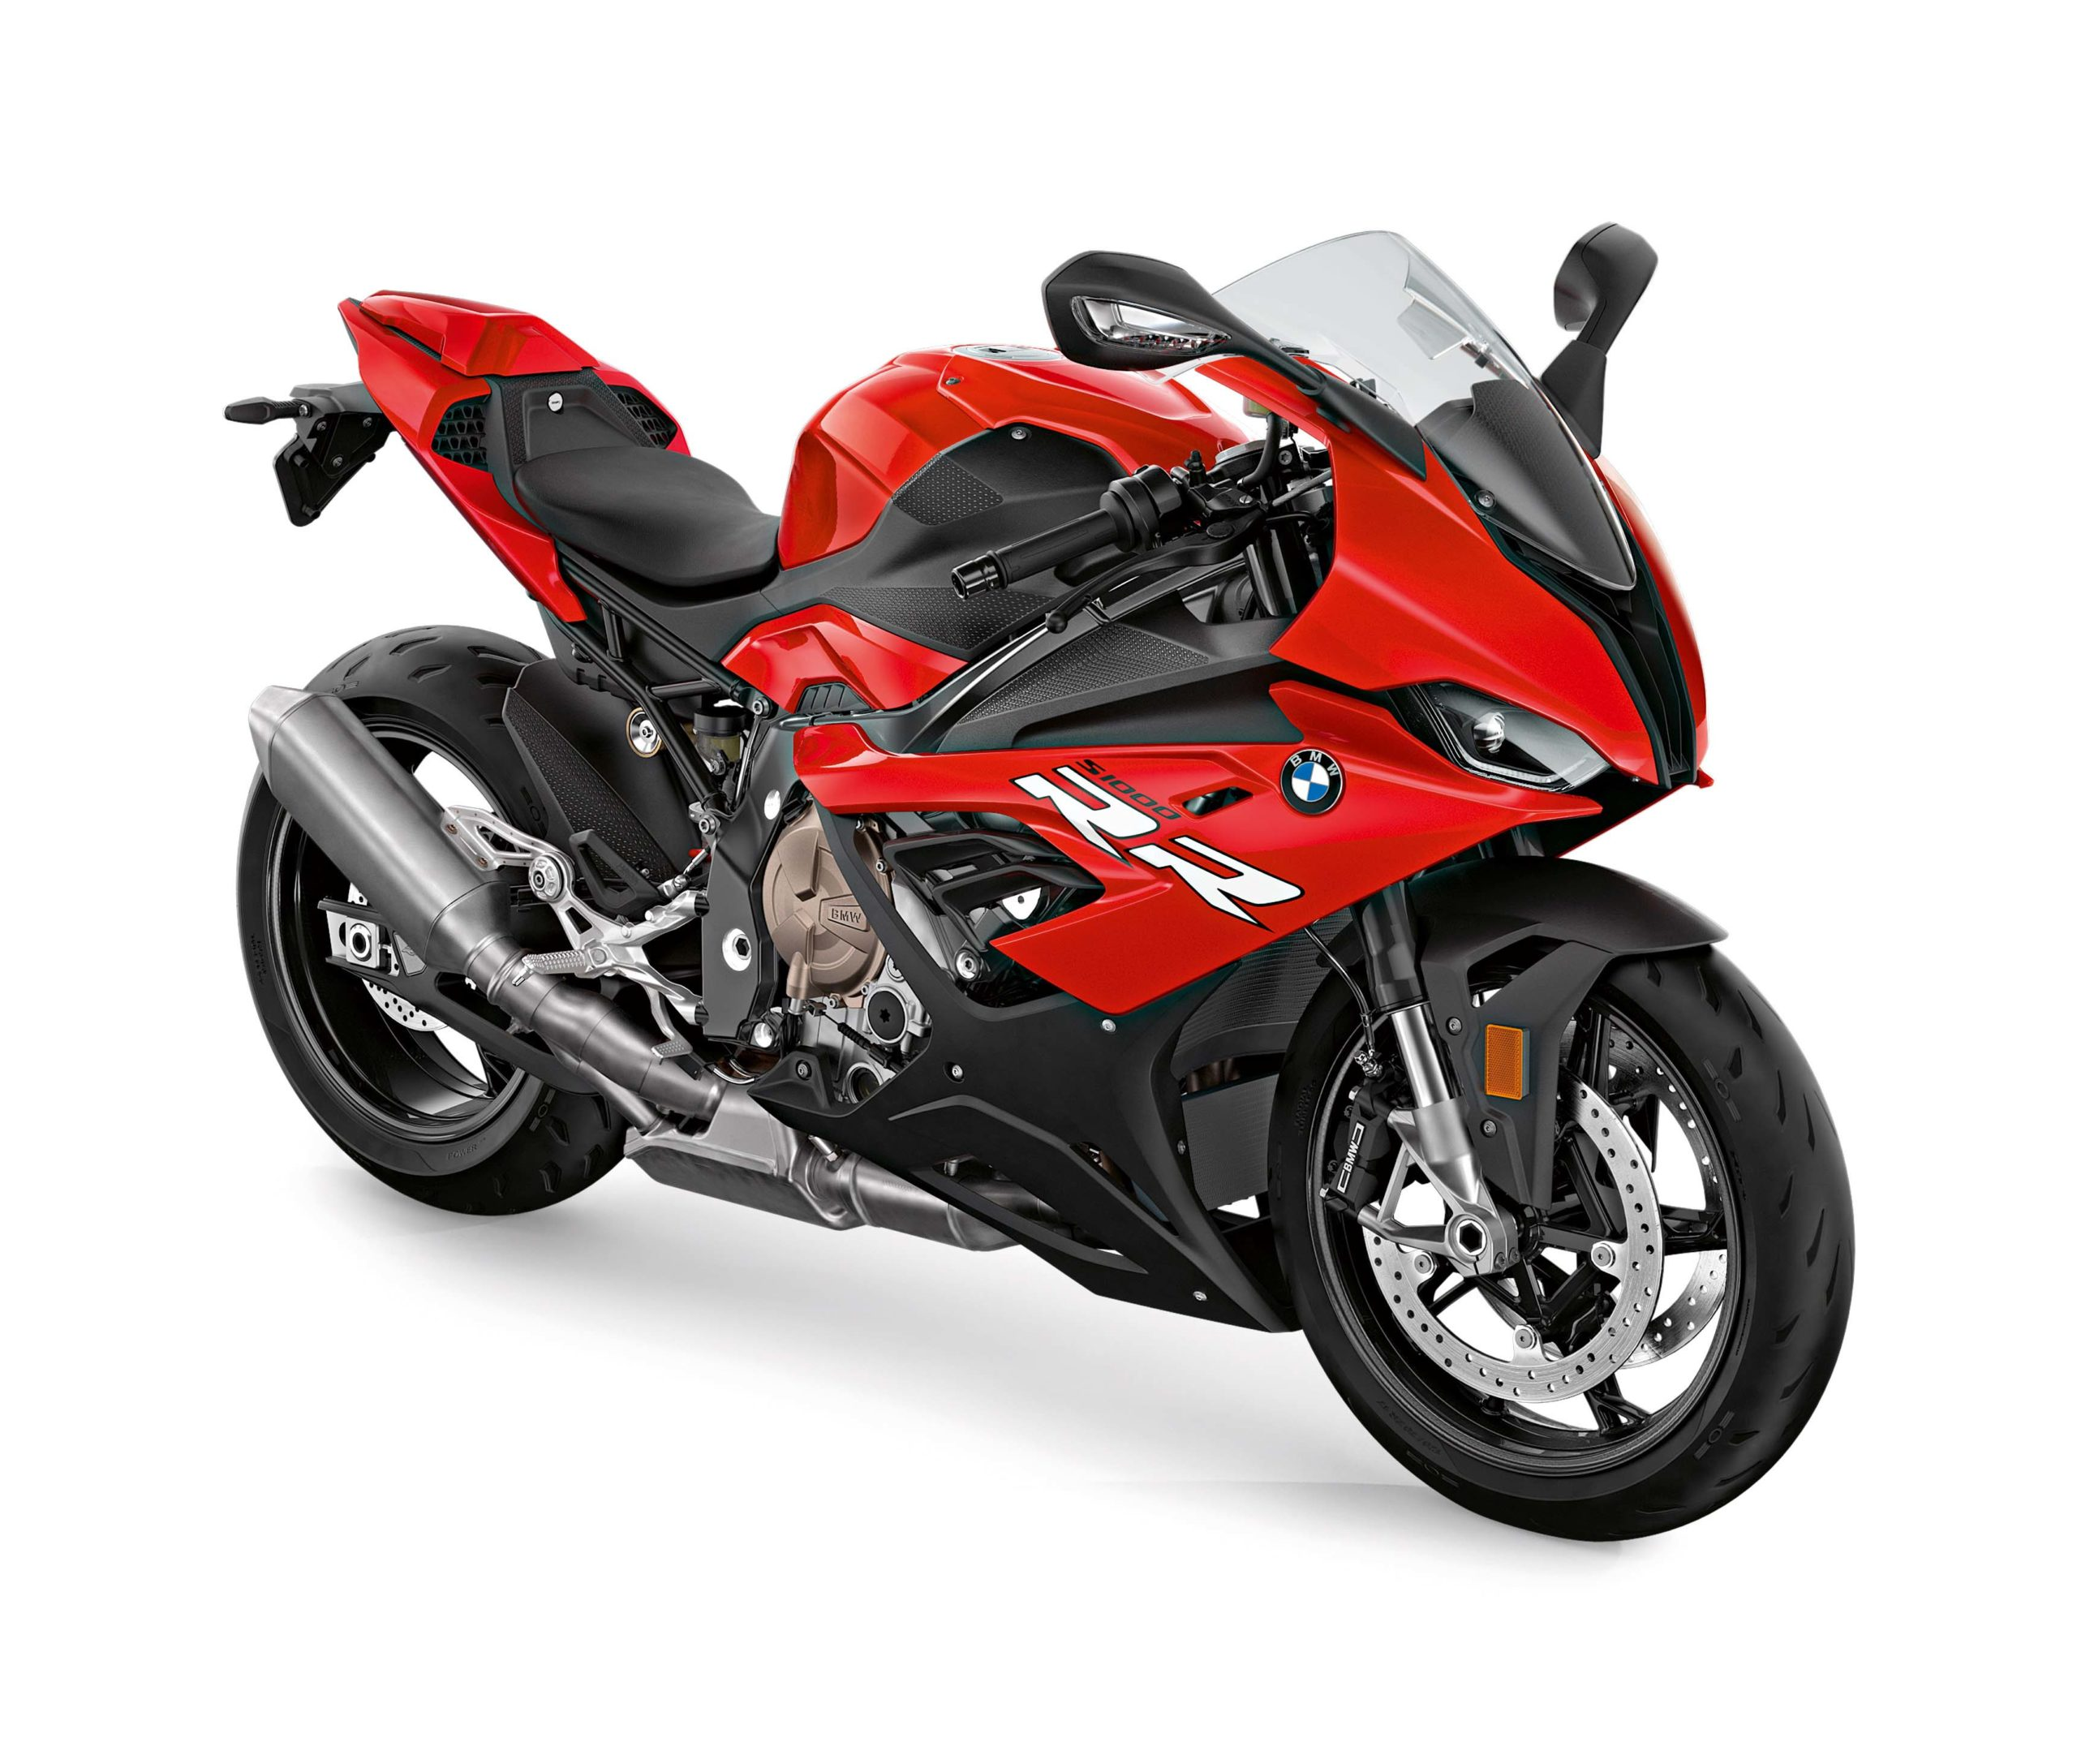 S1000rr Carbon Fairings And The Benefits To Avail post thumbnail image